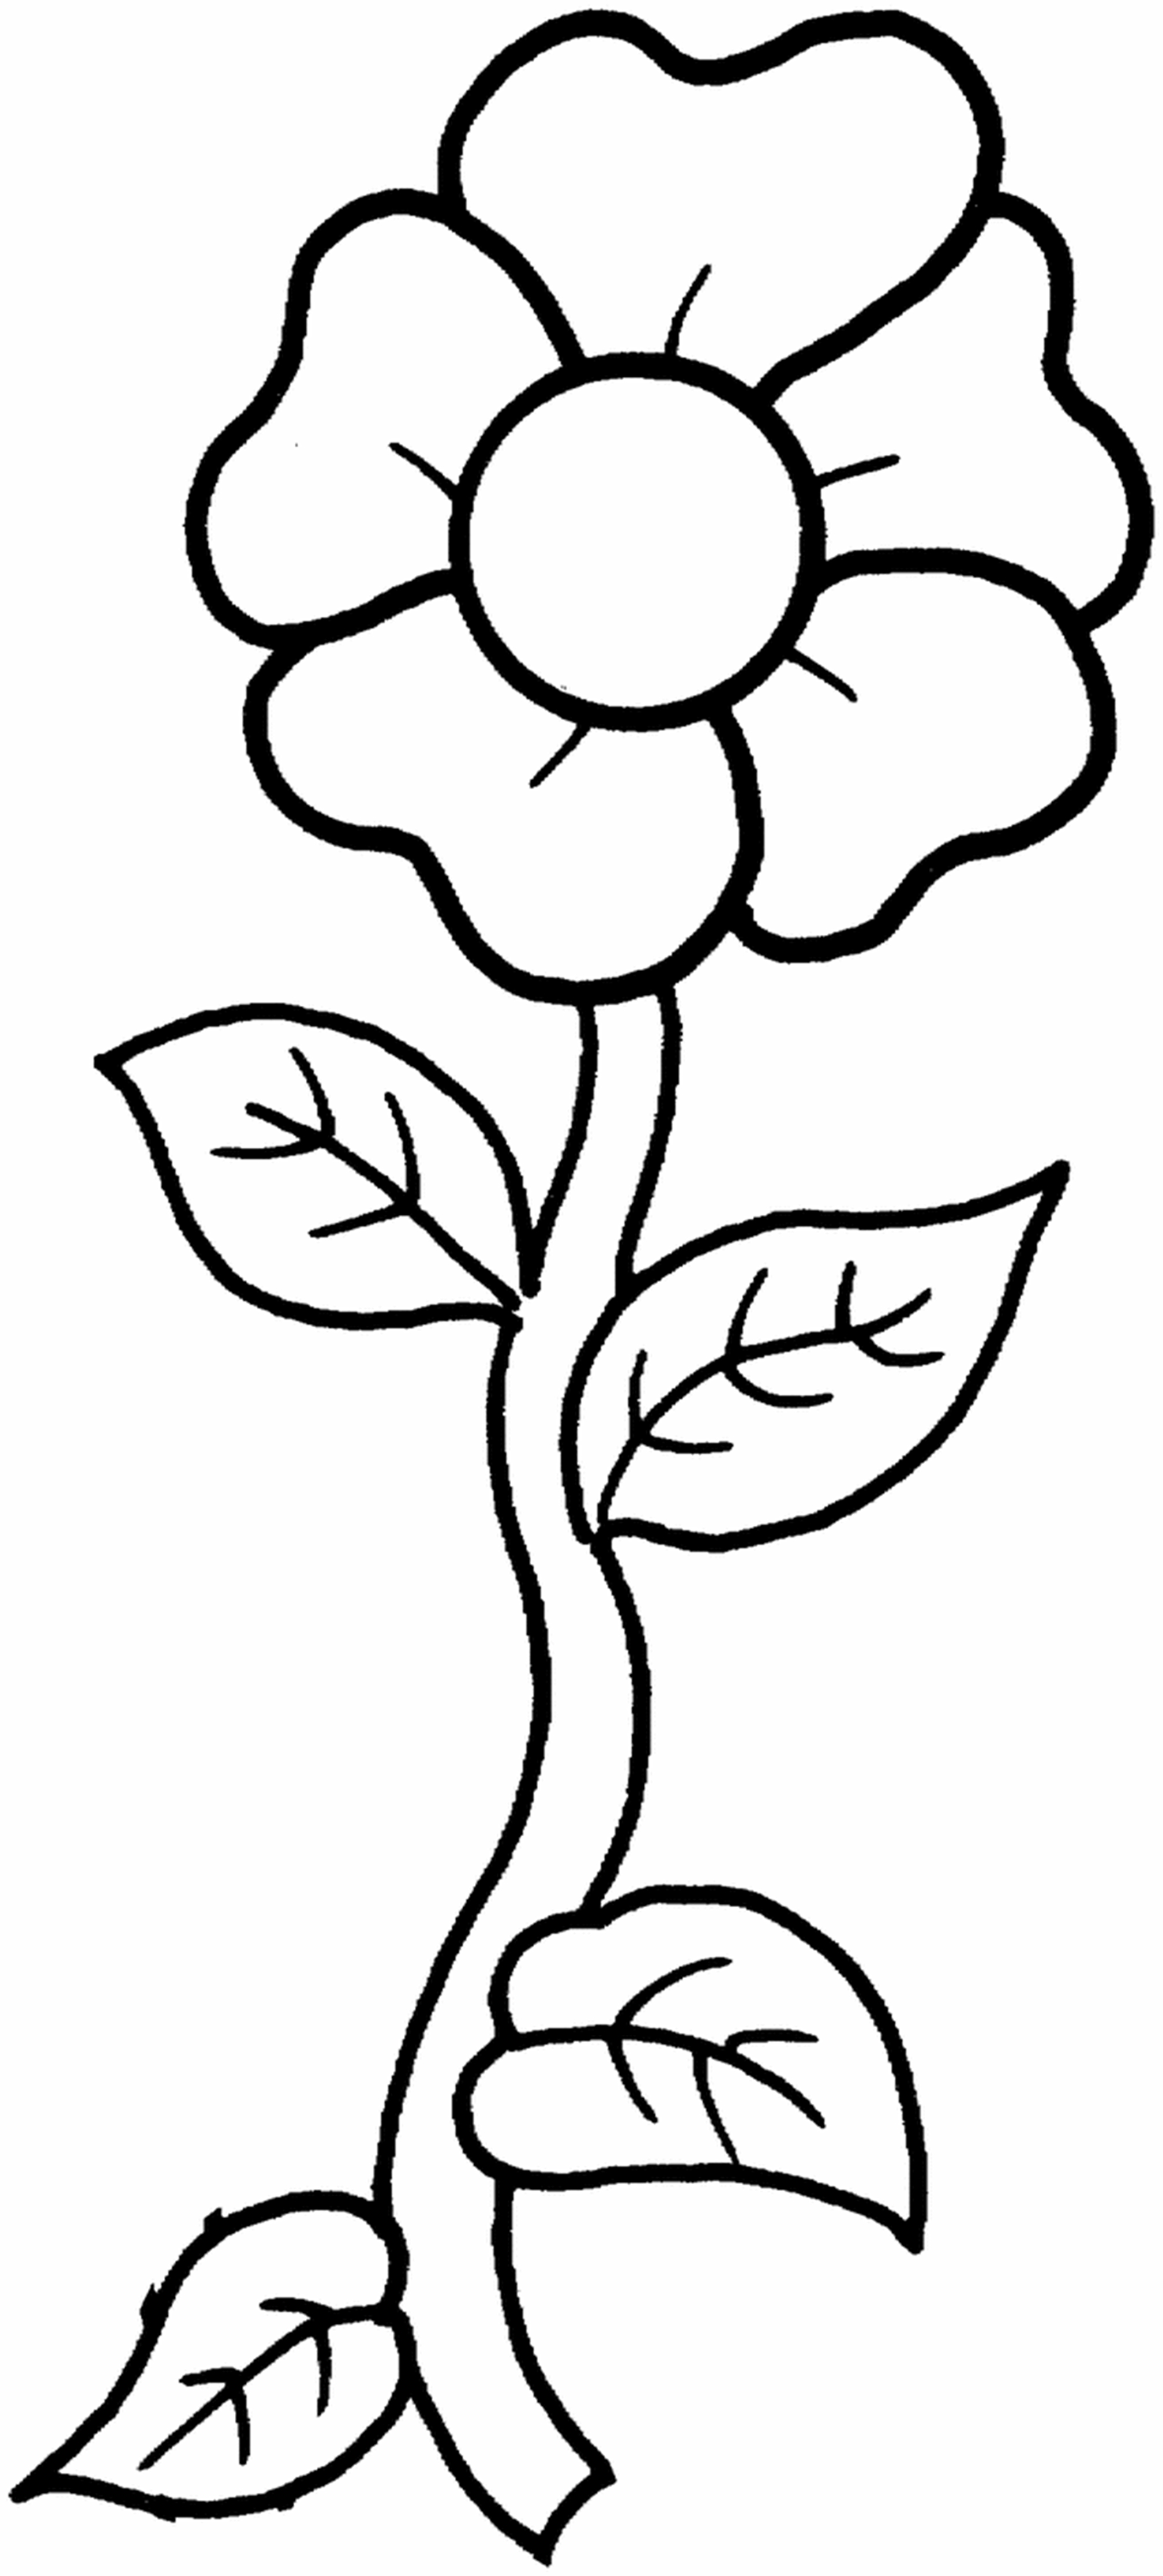 colouring pictures of flowers free printable flower coloring pages for kids flowers pictures colouring of